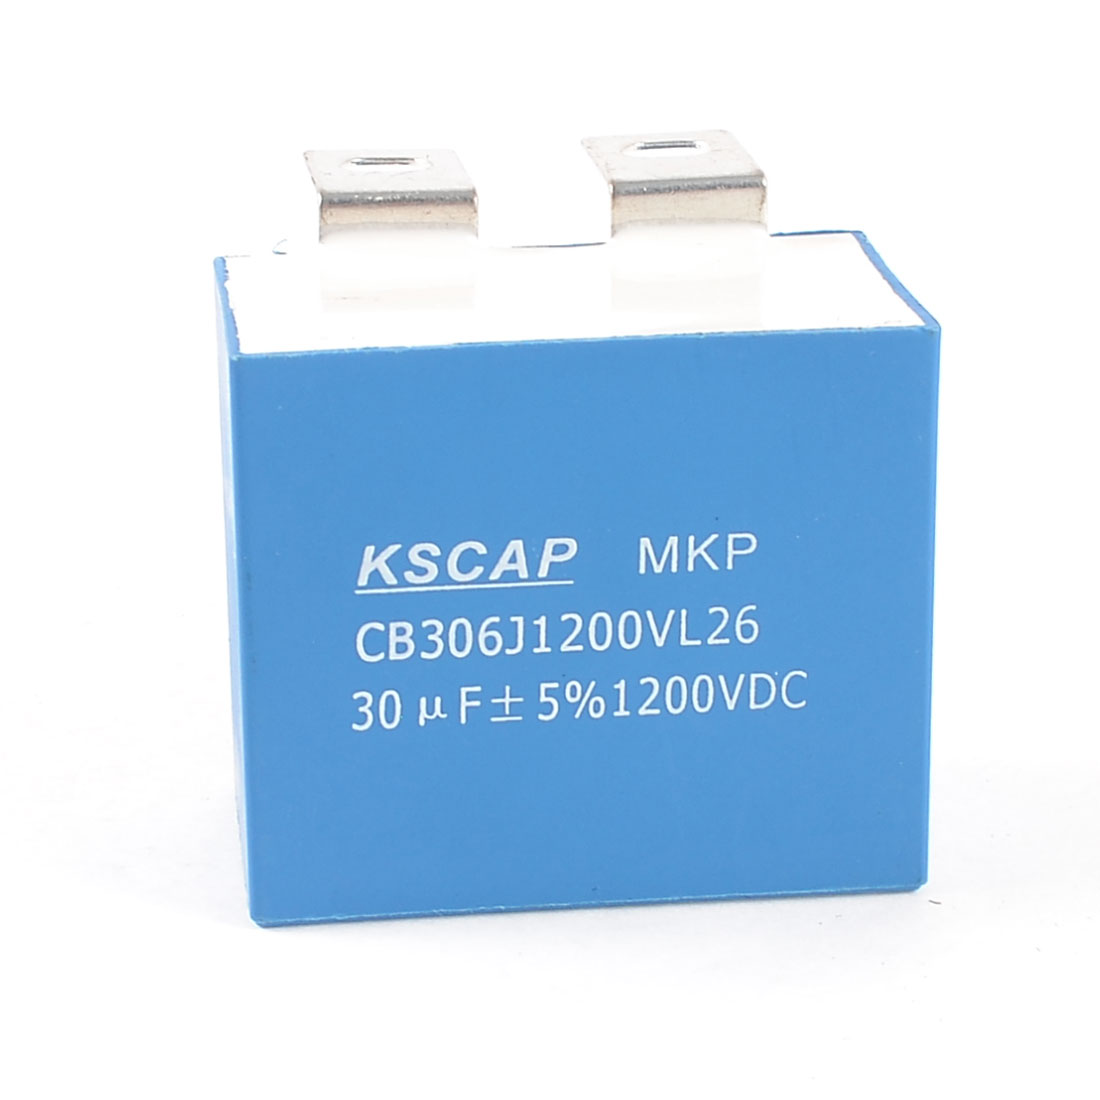 Cuboid Shaped 2 Terminals MKP Capacitor DC 1200V 30uF